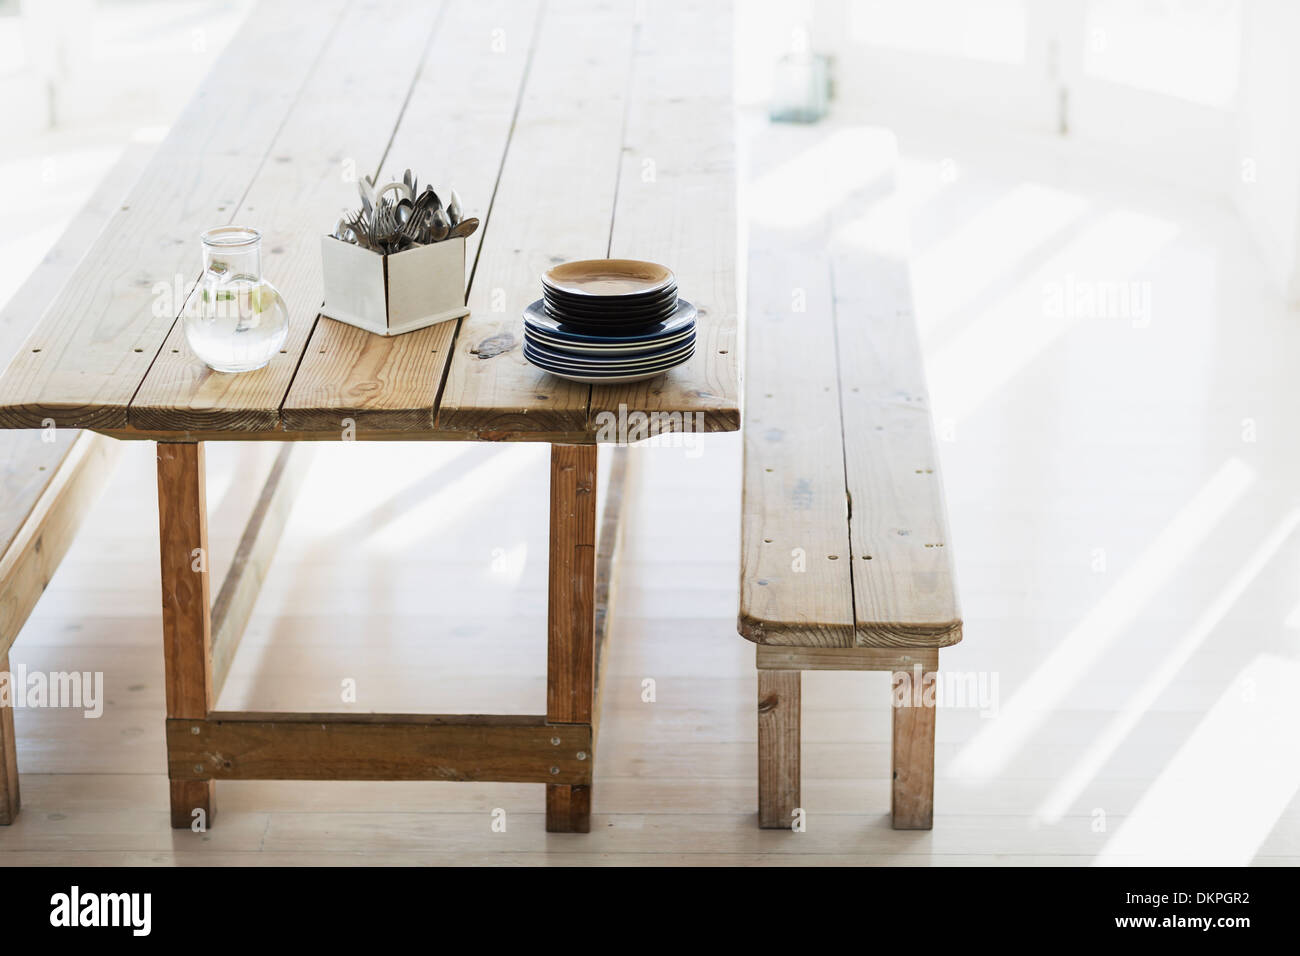 Plates and silverware stacked on wooden table - Stock Image